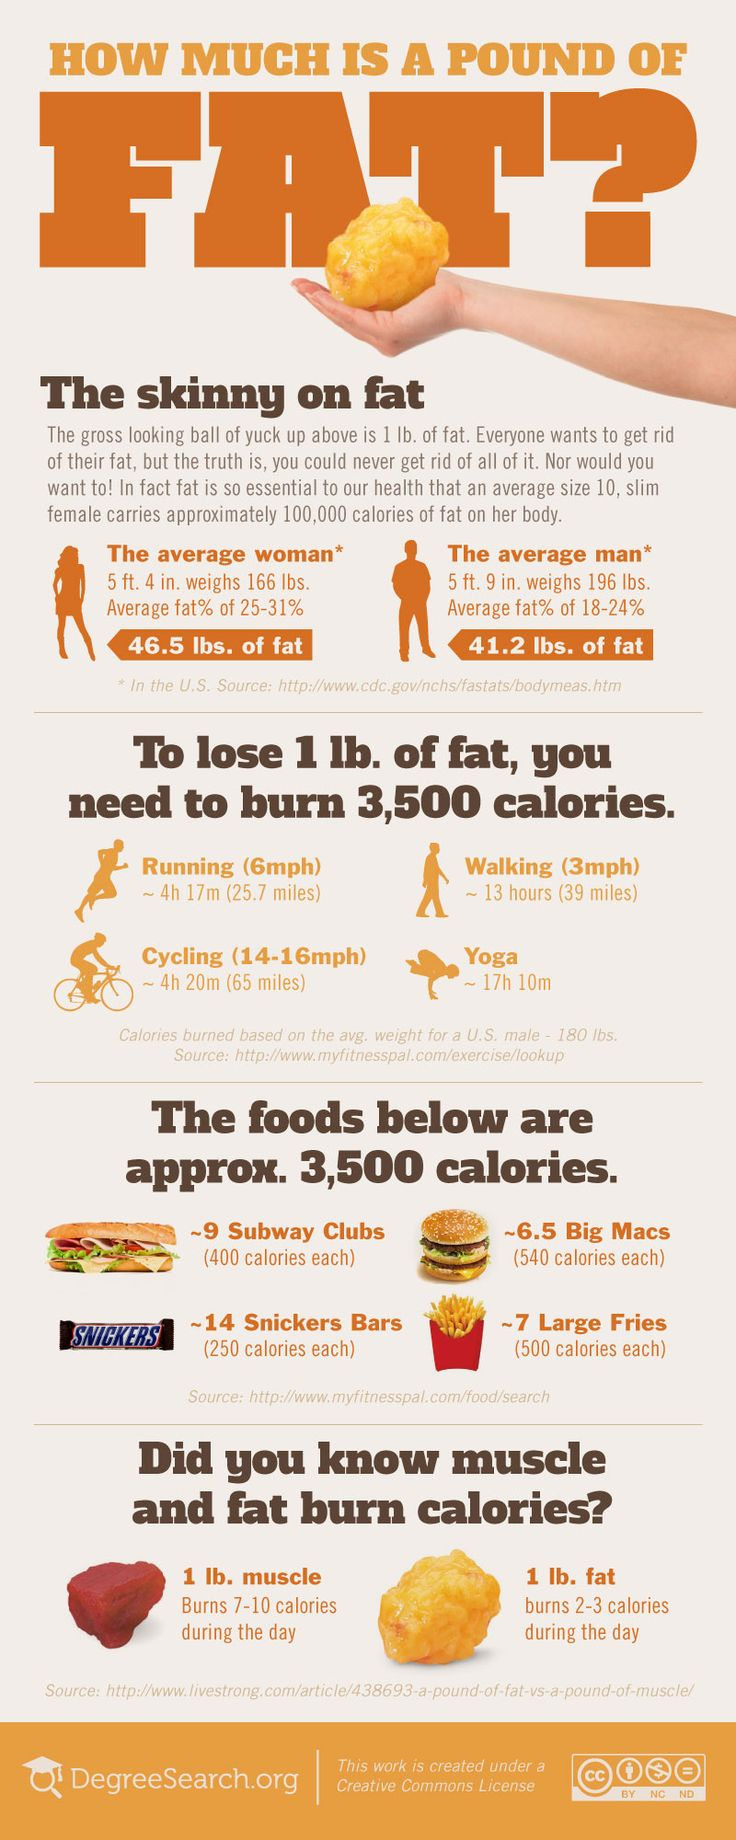 Calories are a measurement of energy, and a person must burn 3500 calories in order to lose a single pound.